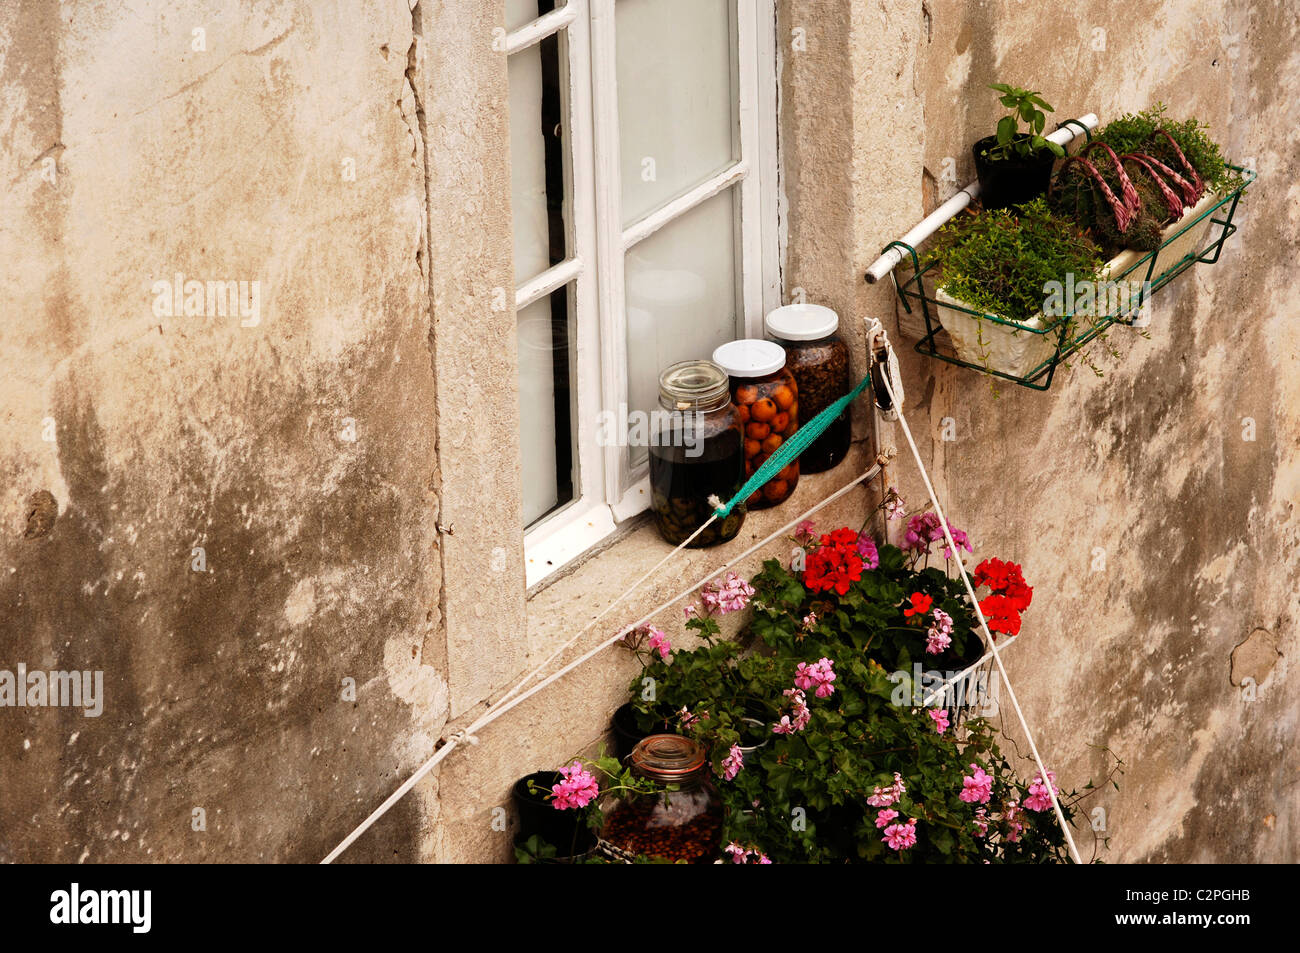 Jars of fruit with geranium and herb window boxes on a residential property, Dubrovnik, Croatia. - Stock Image